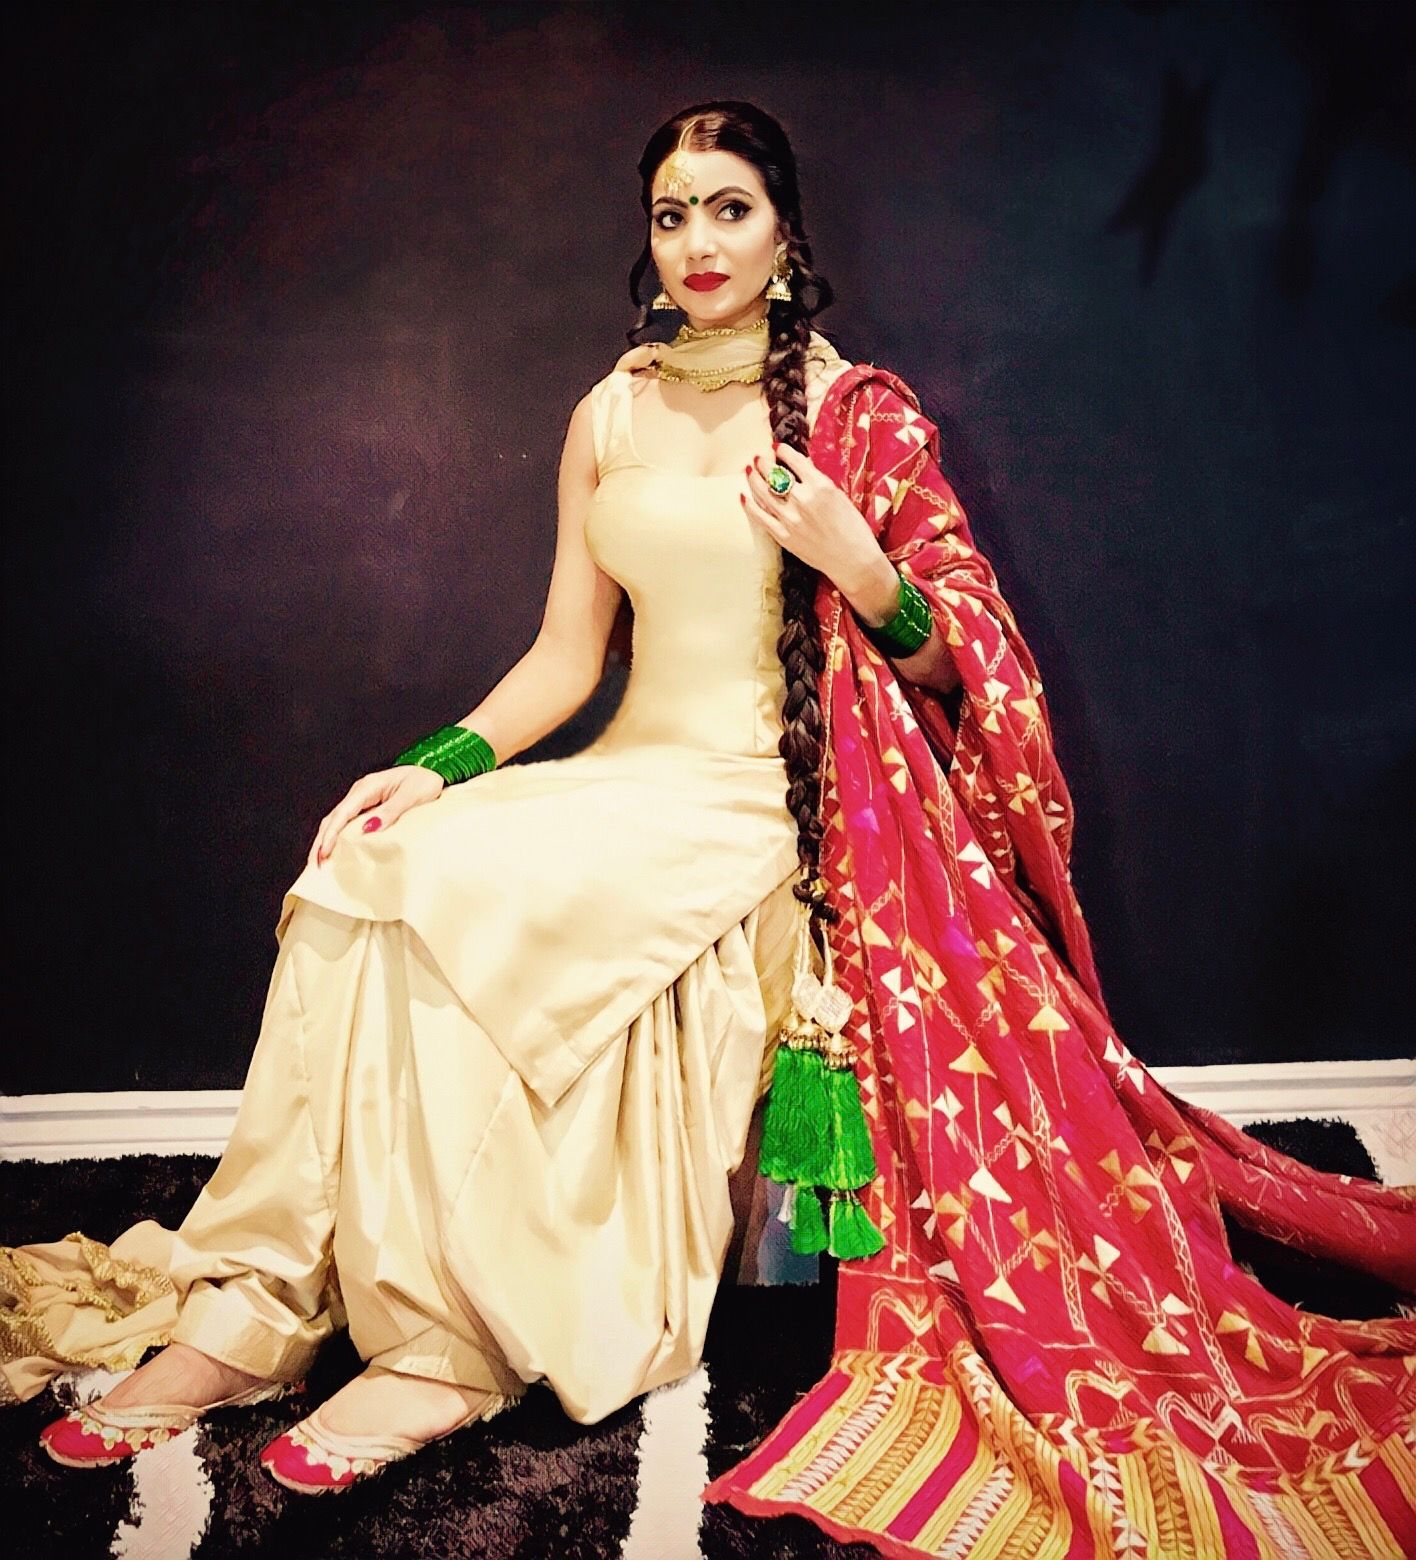 Patiala Salwar Suit With Traditional Antique Phulkari And Traditional Jewellery With Pranda Phulkari Pranda Pun Punjabi Outfits Punjabi Fashion Suit Fashion